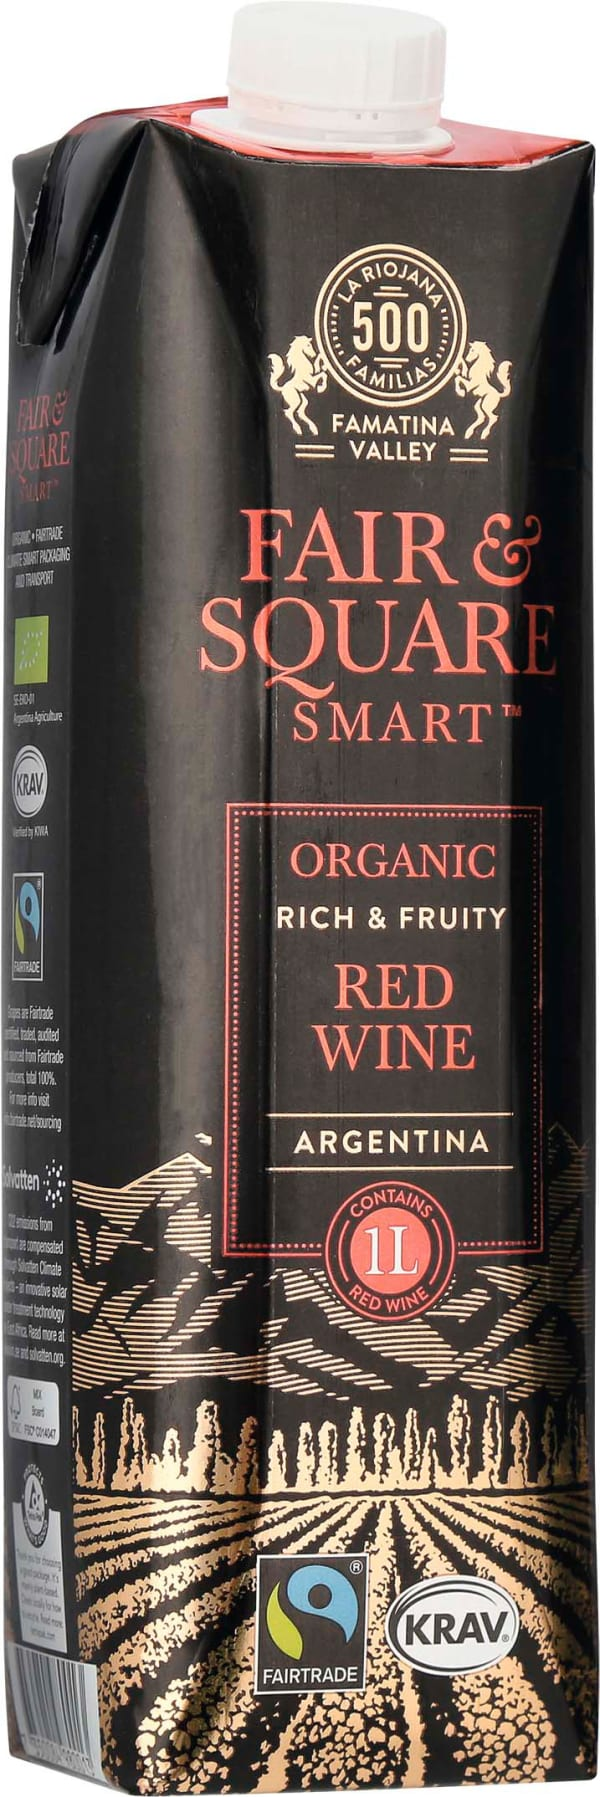 Fair & Square Red 2018 carton package